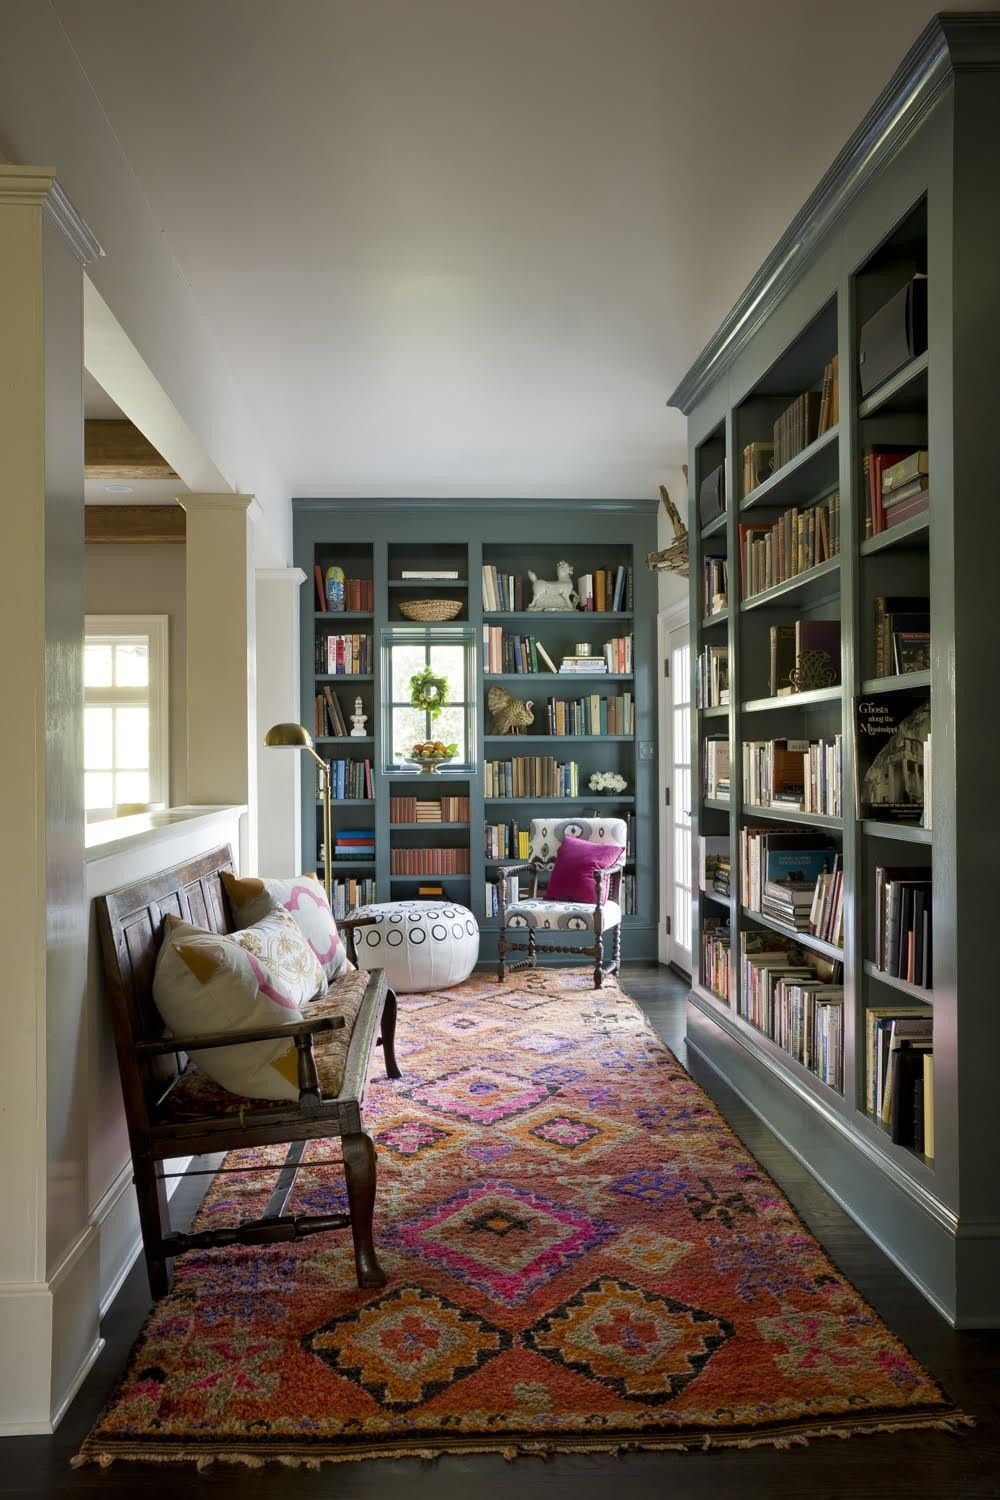 living room wall cabinets built%0A Built in bookshelves painted Cornflower Blue designed by Janie Molster